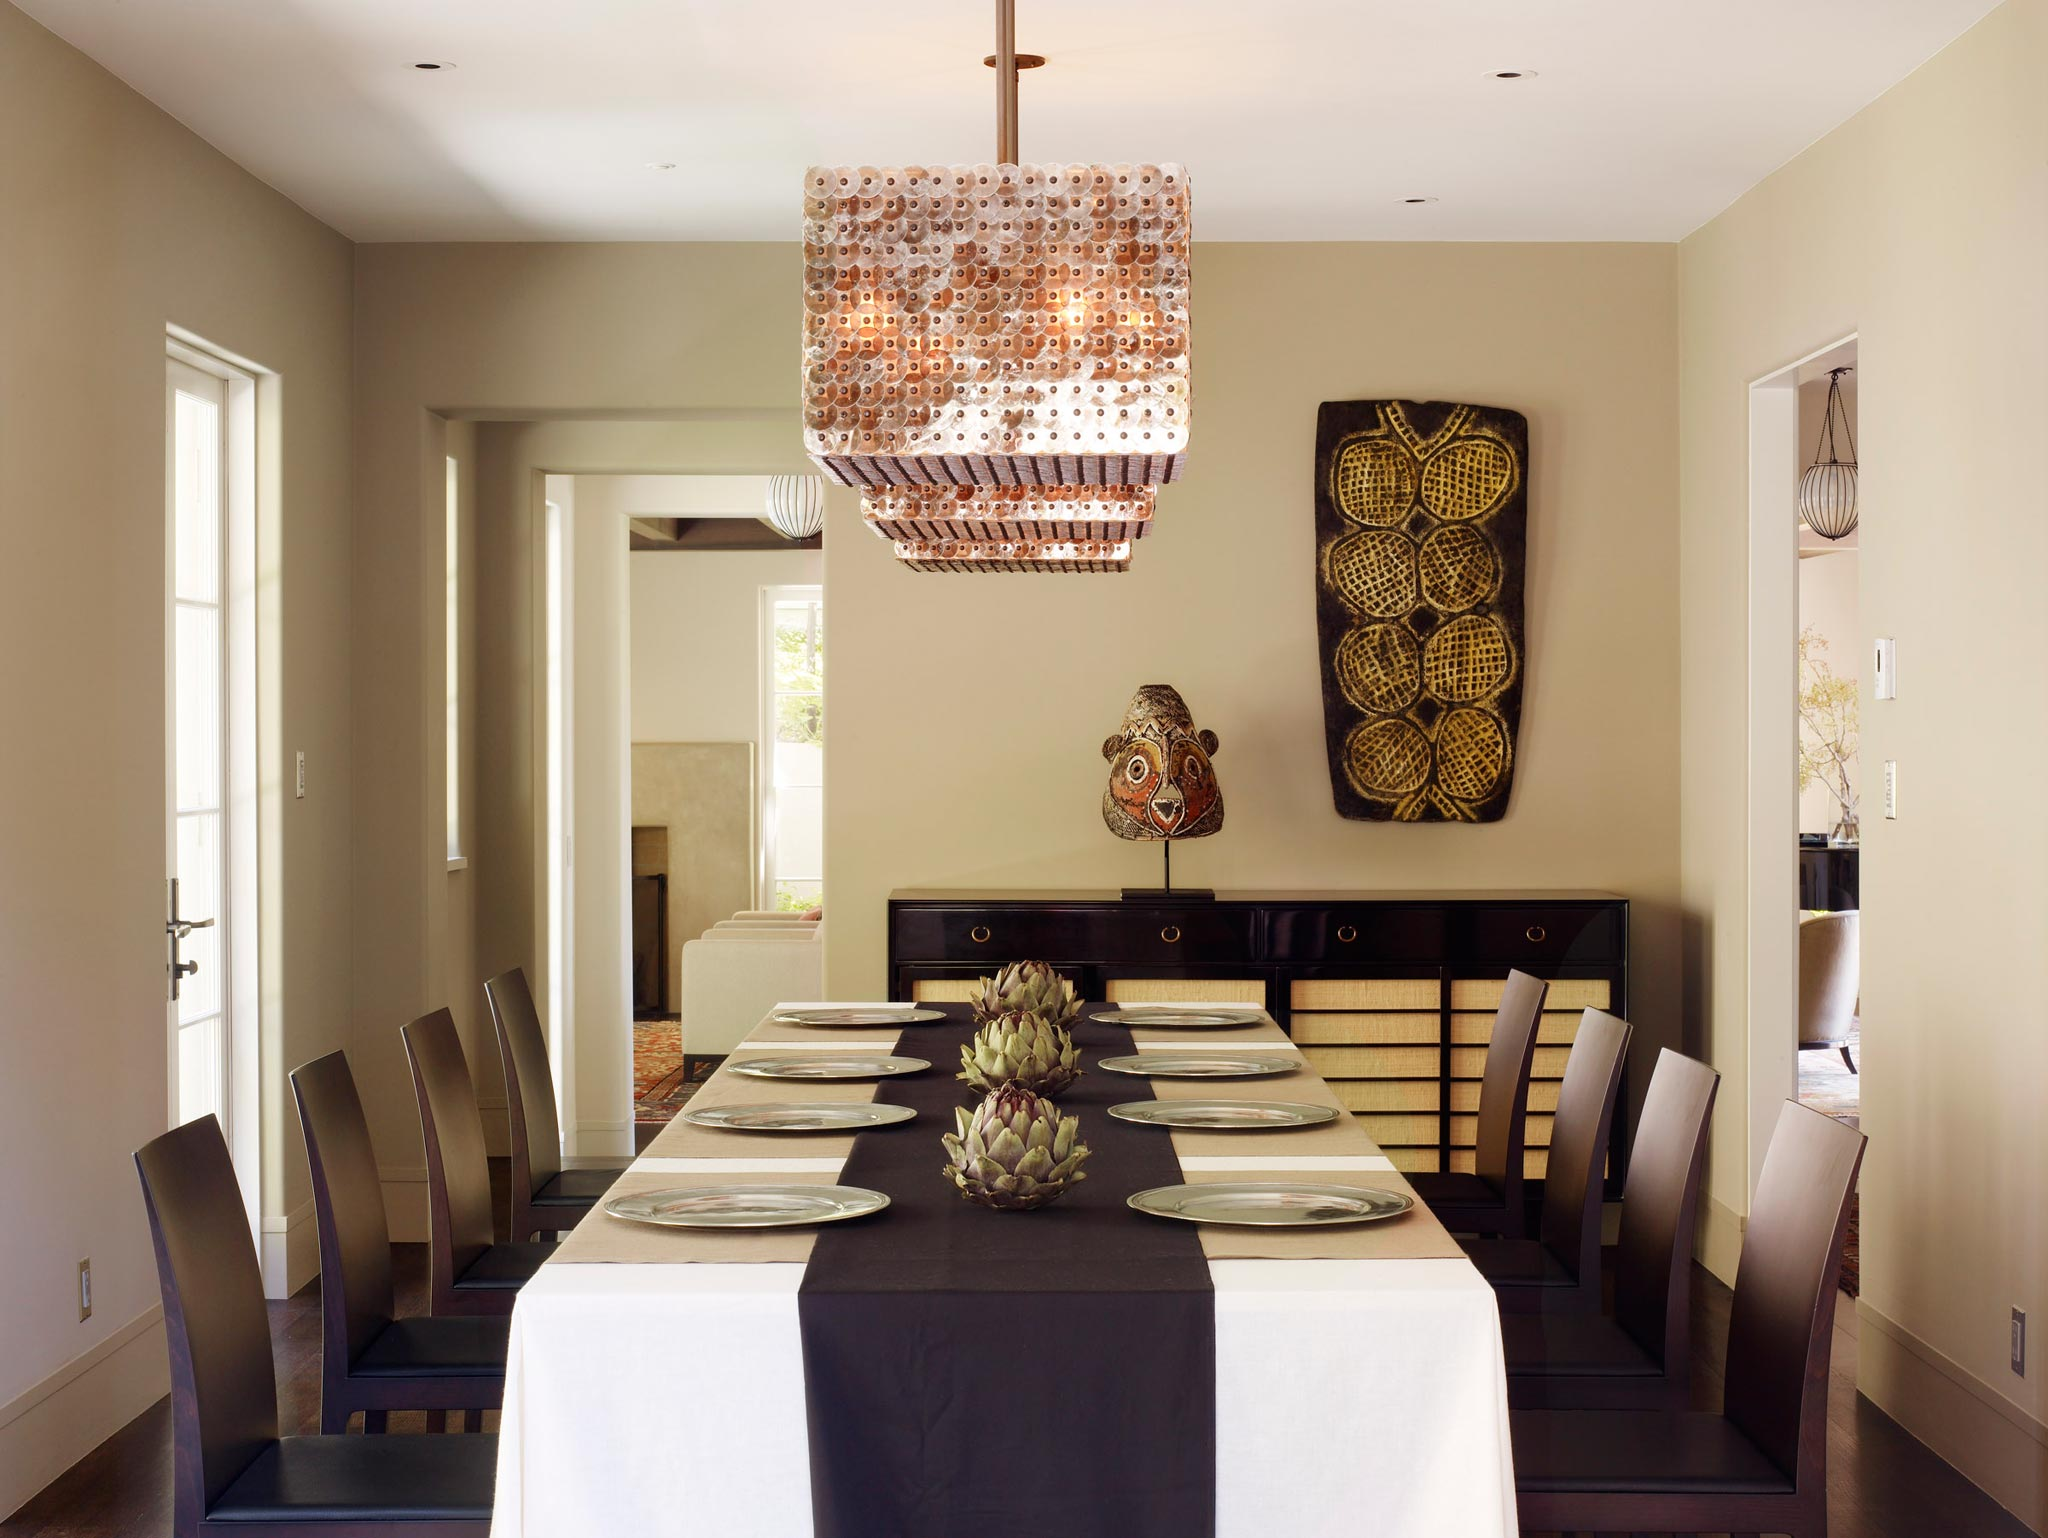 Claremont modern aesthetic pavillon house interior view of dining room with dining table